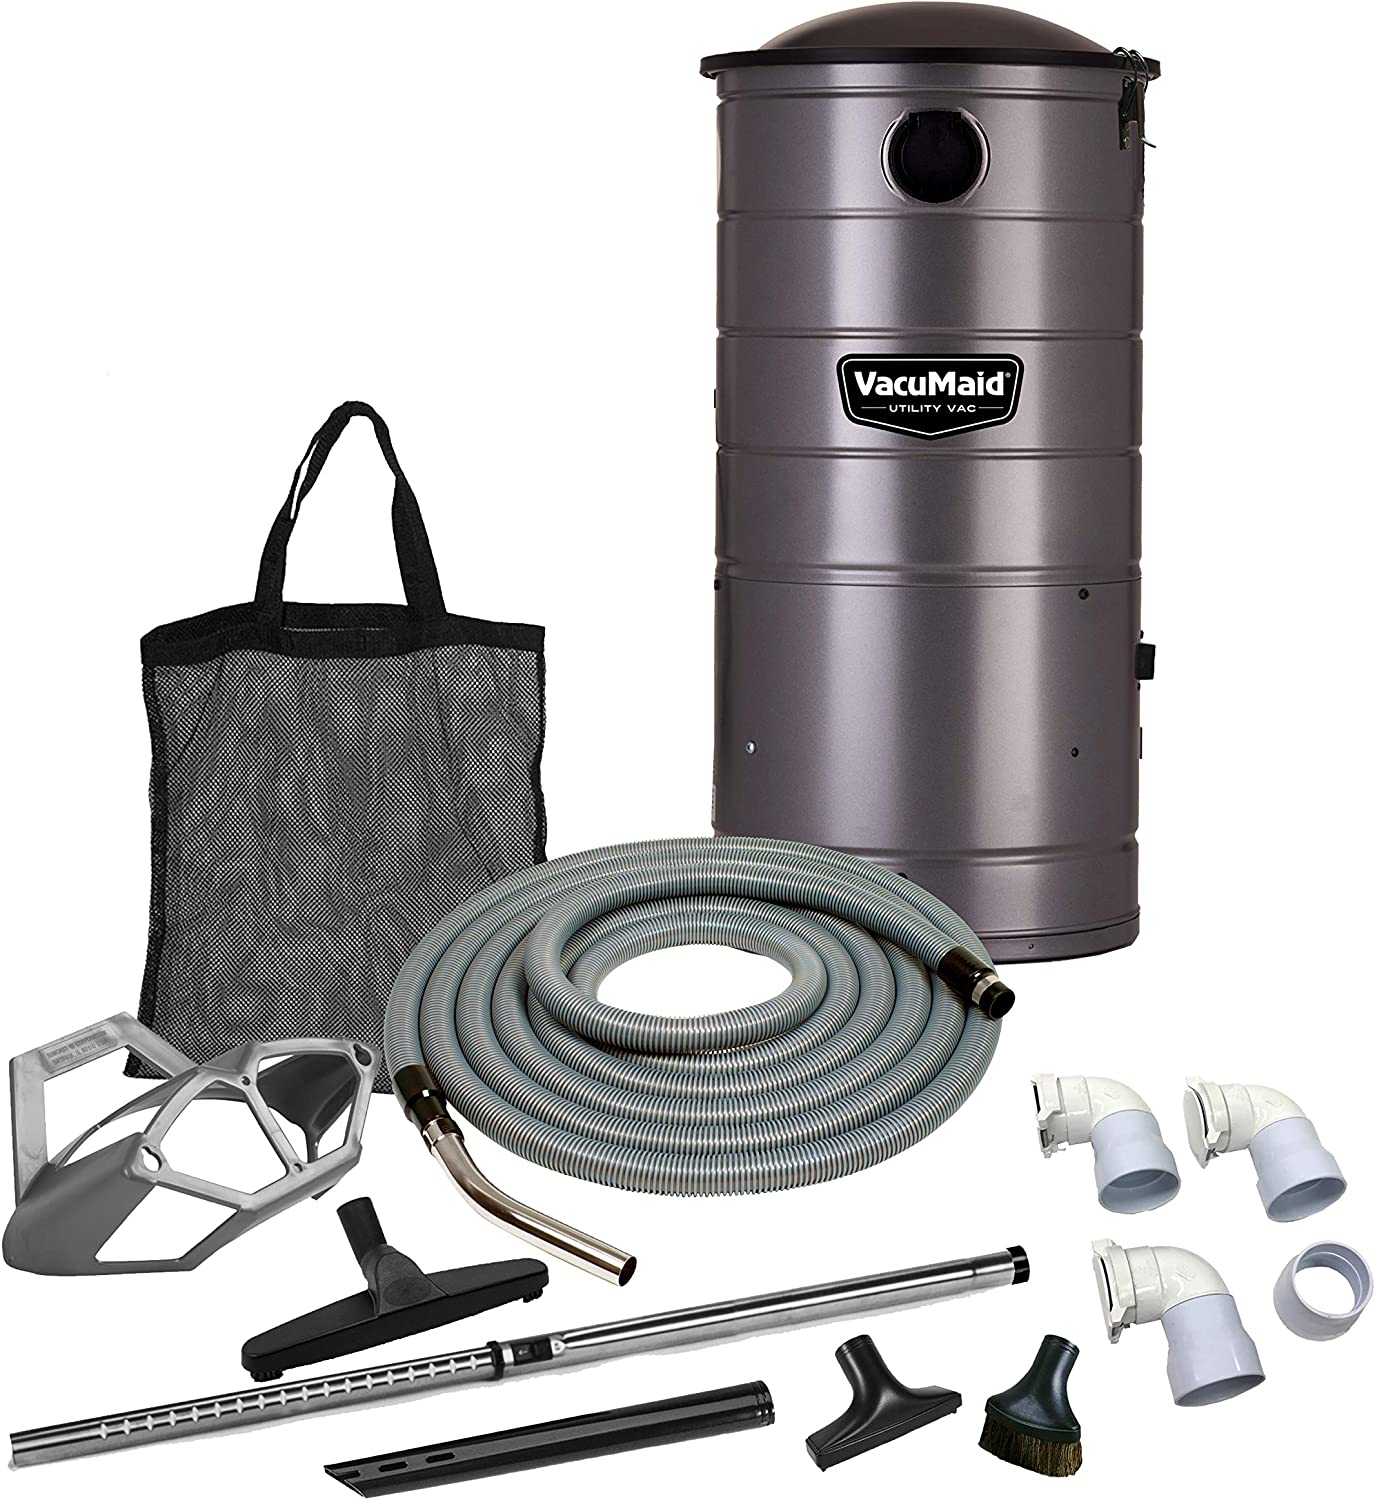 VacuMaid UV150GKP3 Extended Life Professional Wall Mounted Utility Vacuum with 50ft. Garage Kit Pro Unit and Kit Plus 3 Inlets